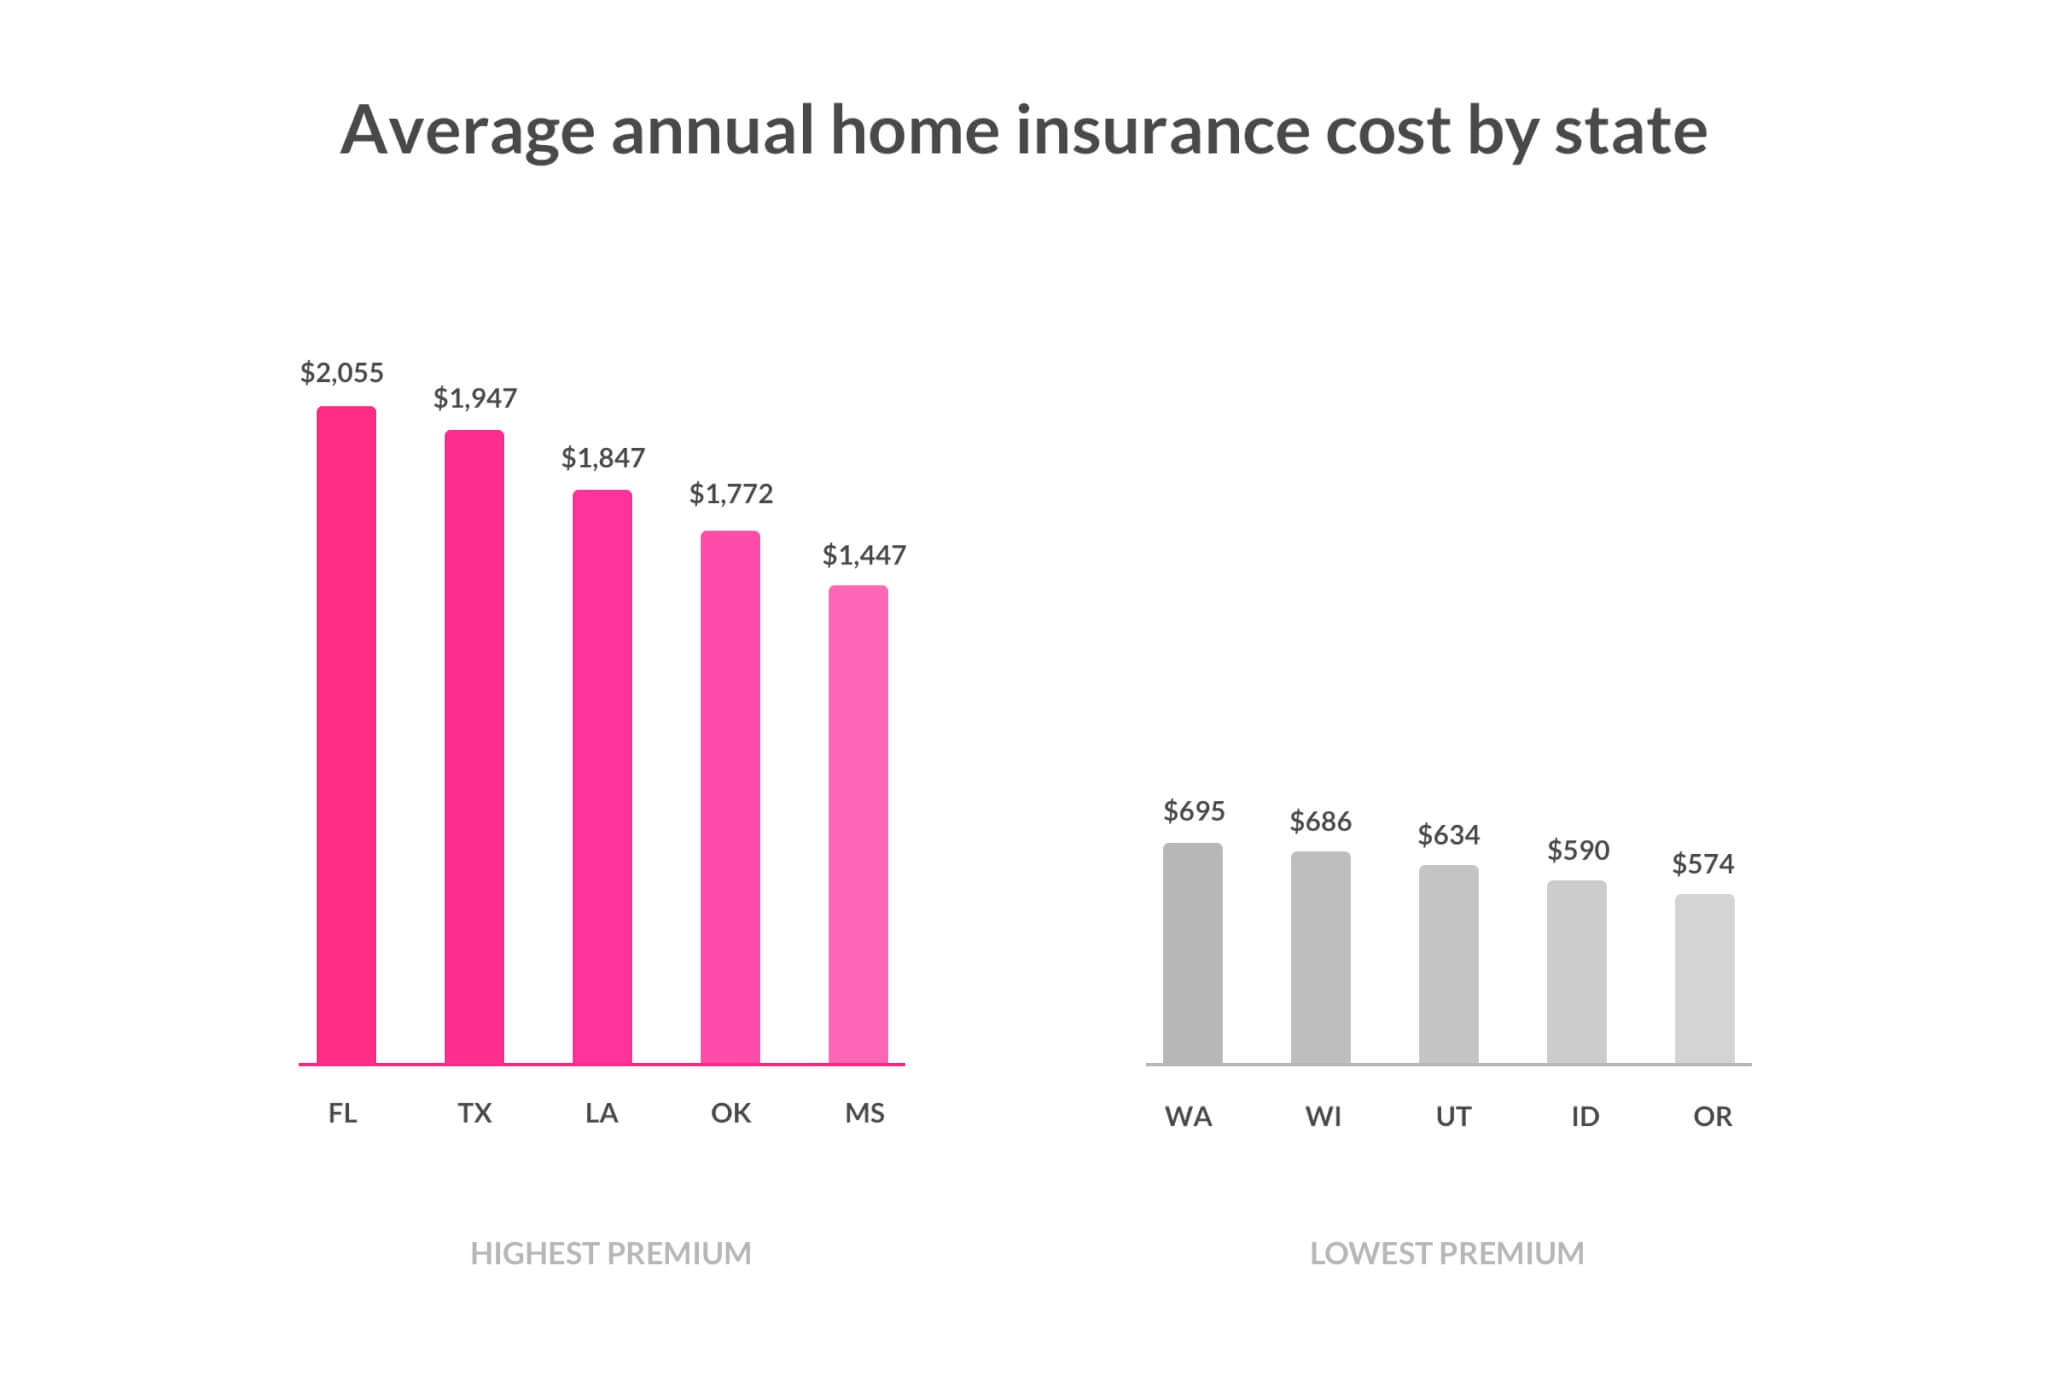 Average annual home insurance cost by state